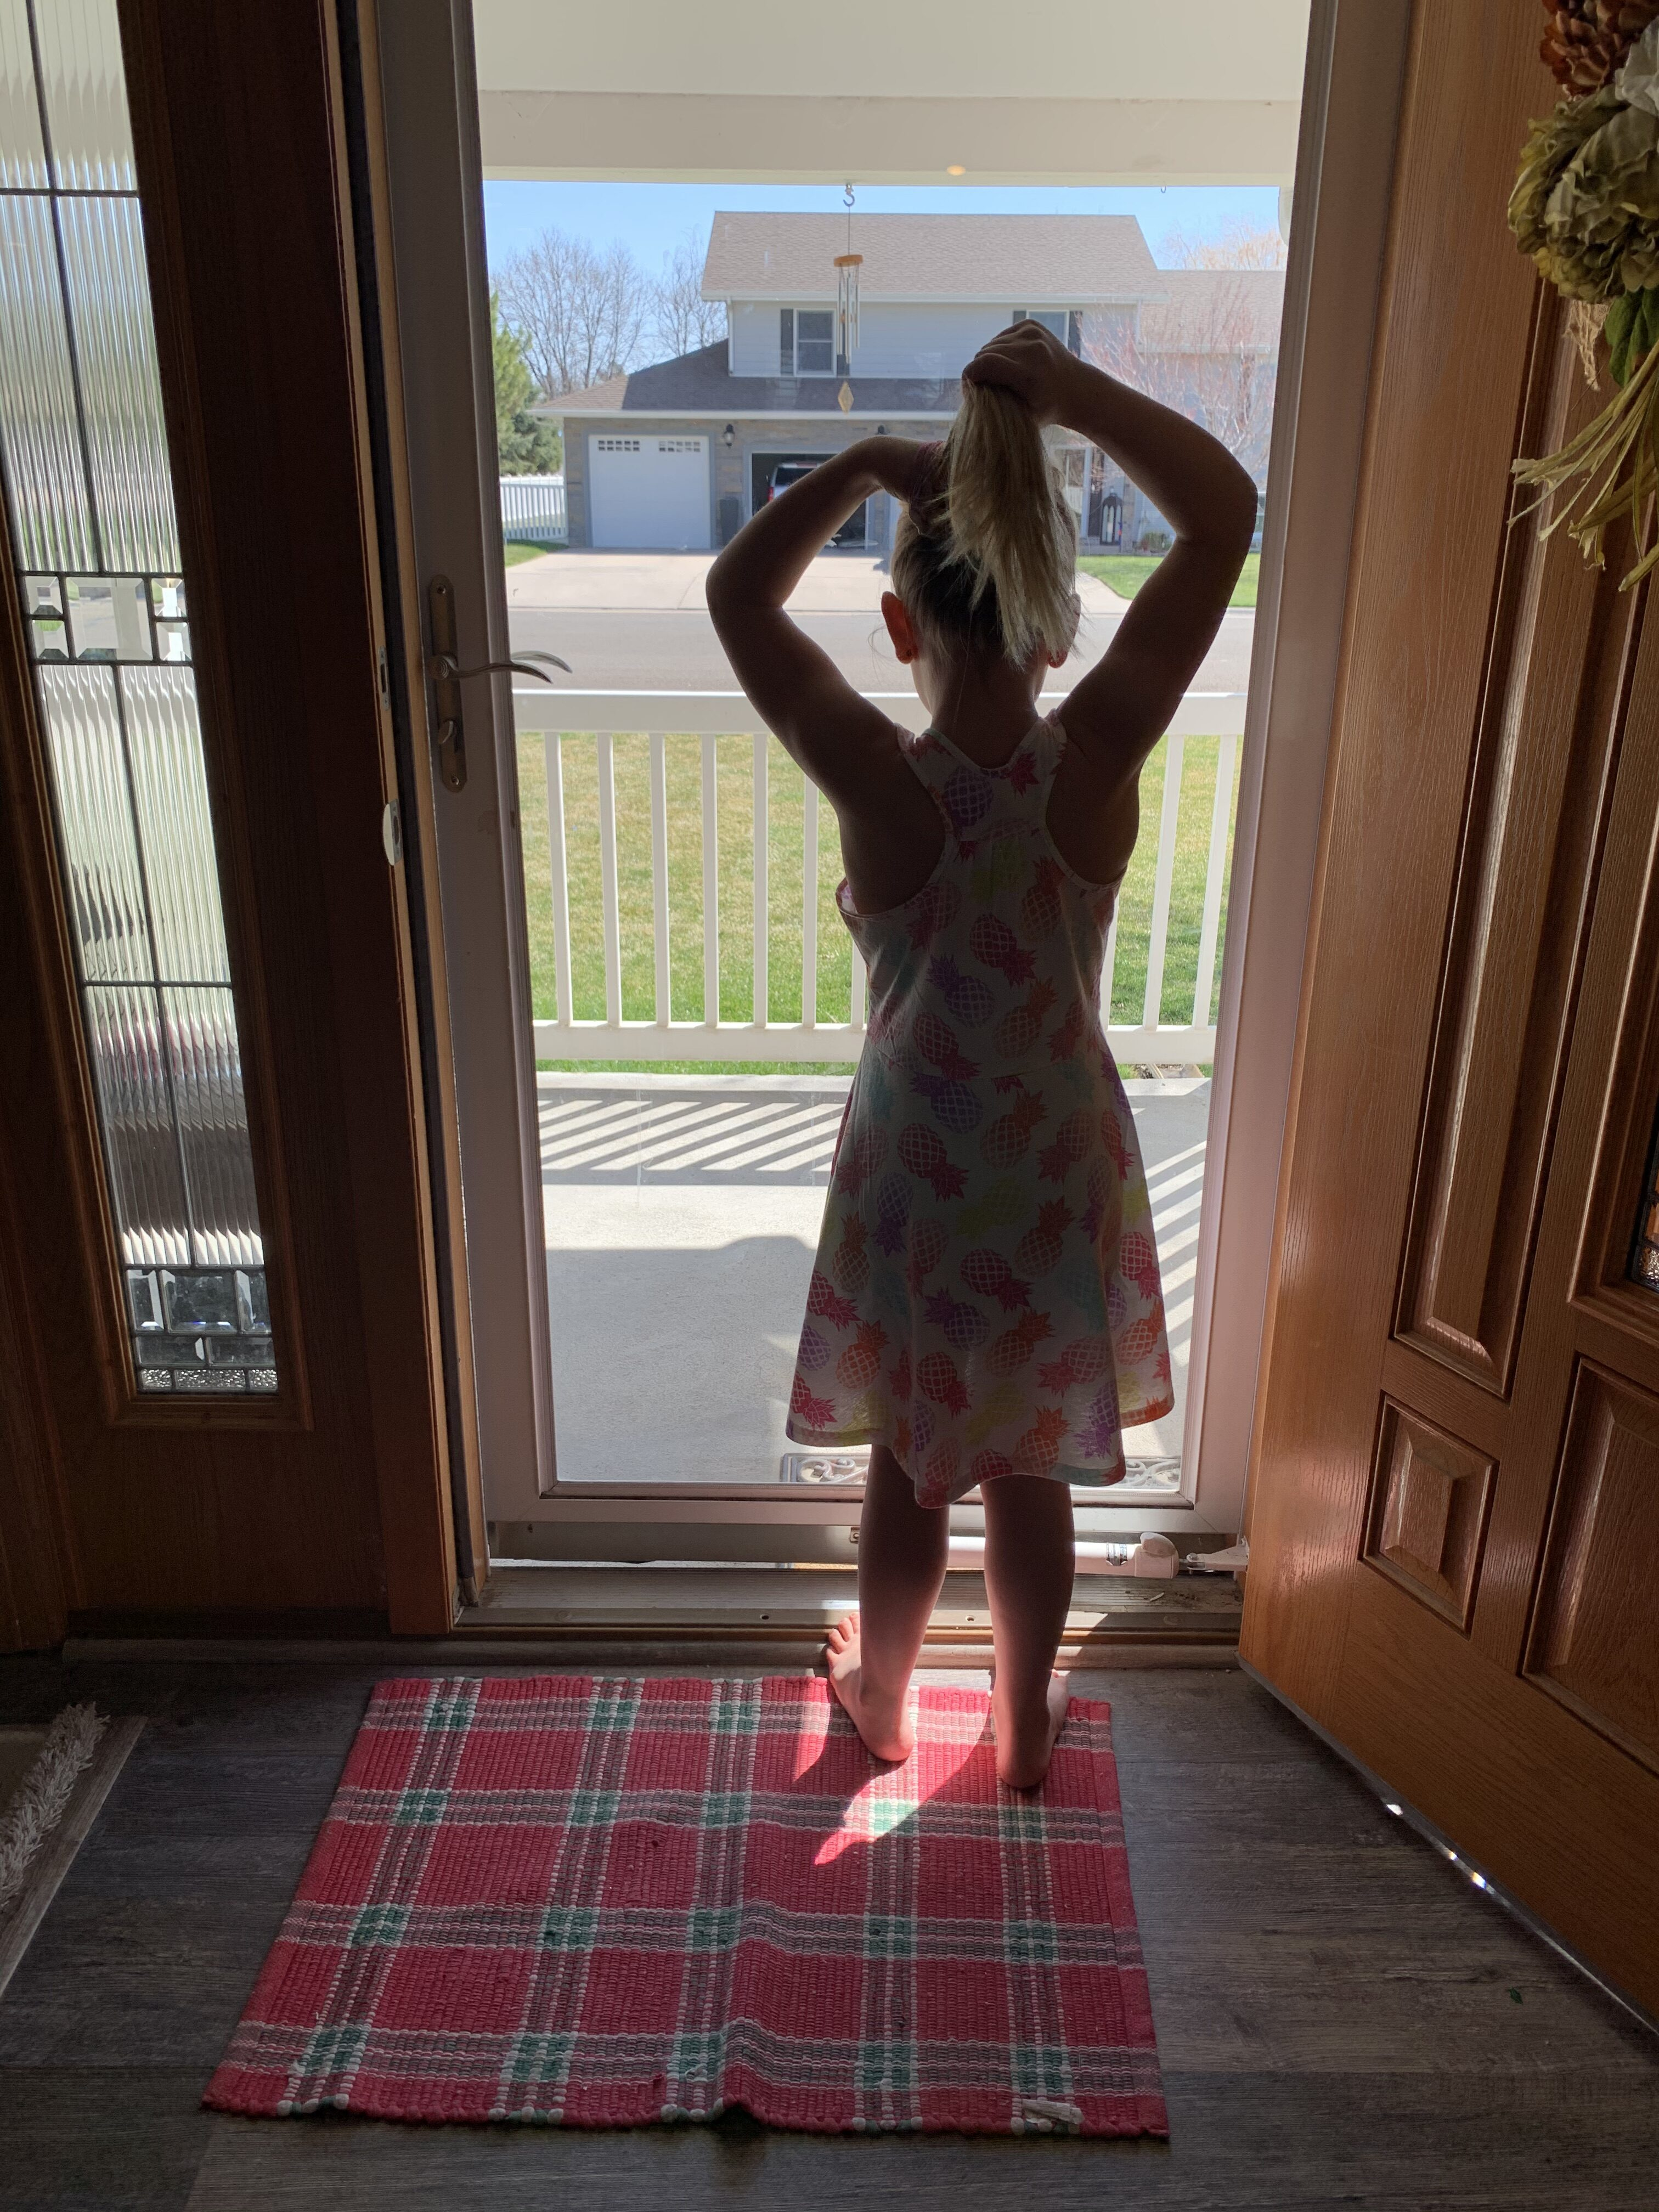 Little girl looking out front door, color photo